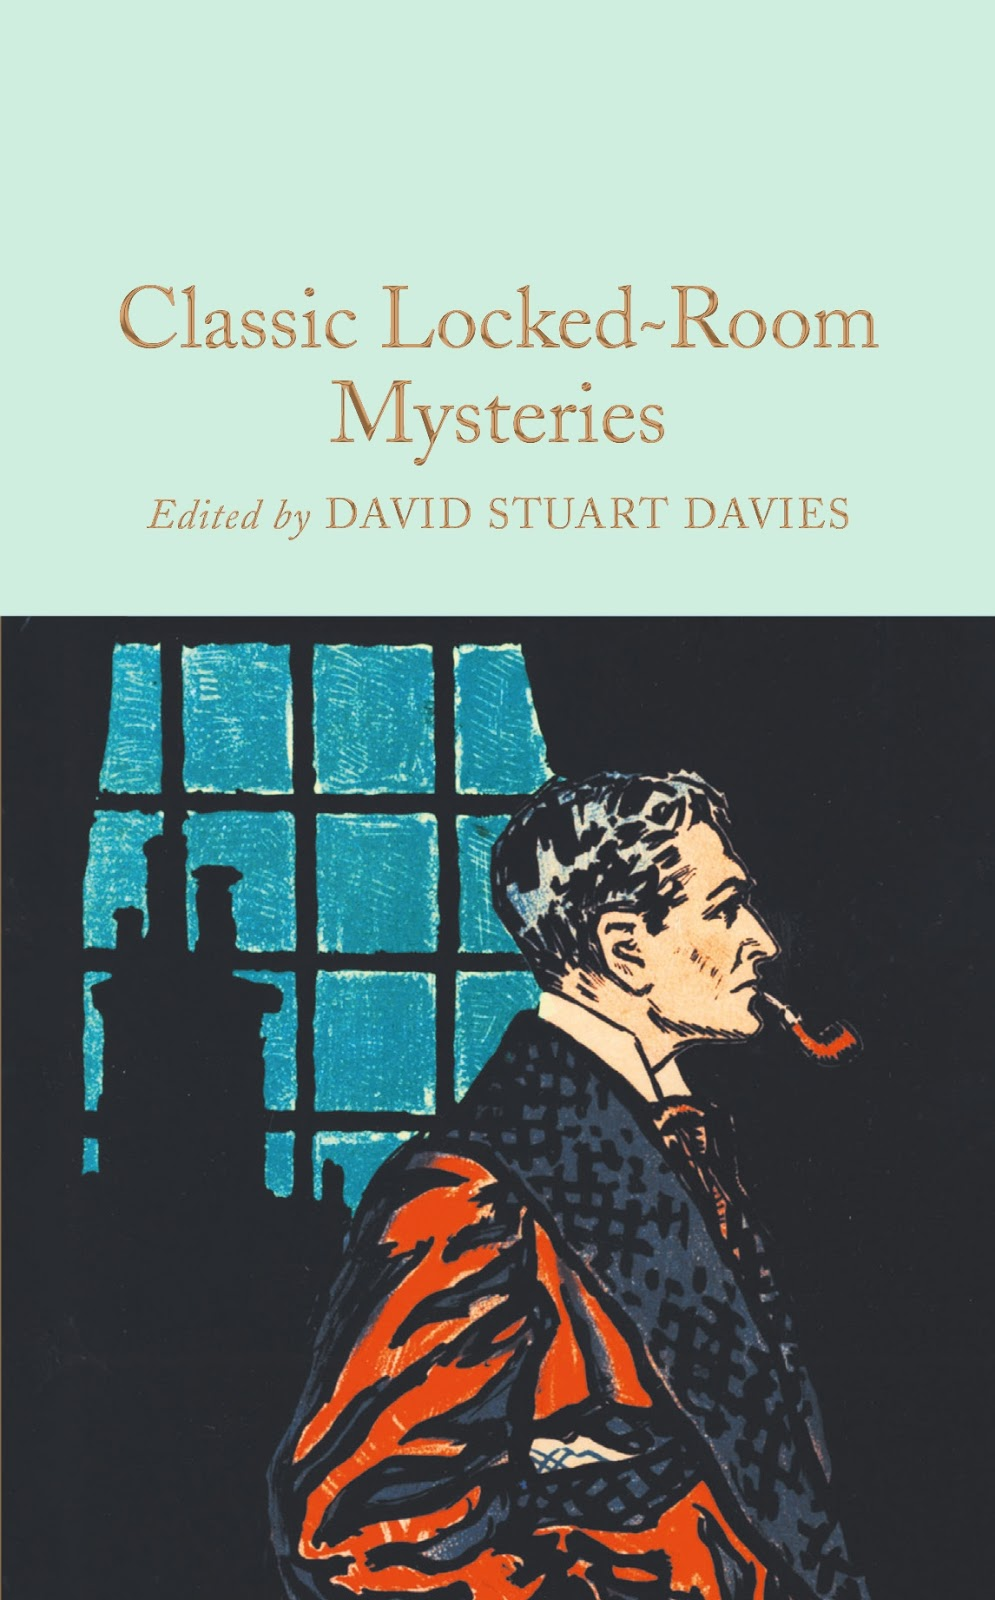 Beneath the Stains of Time: The Locked Room Reader IV: The